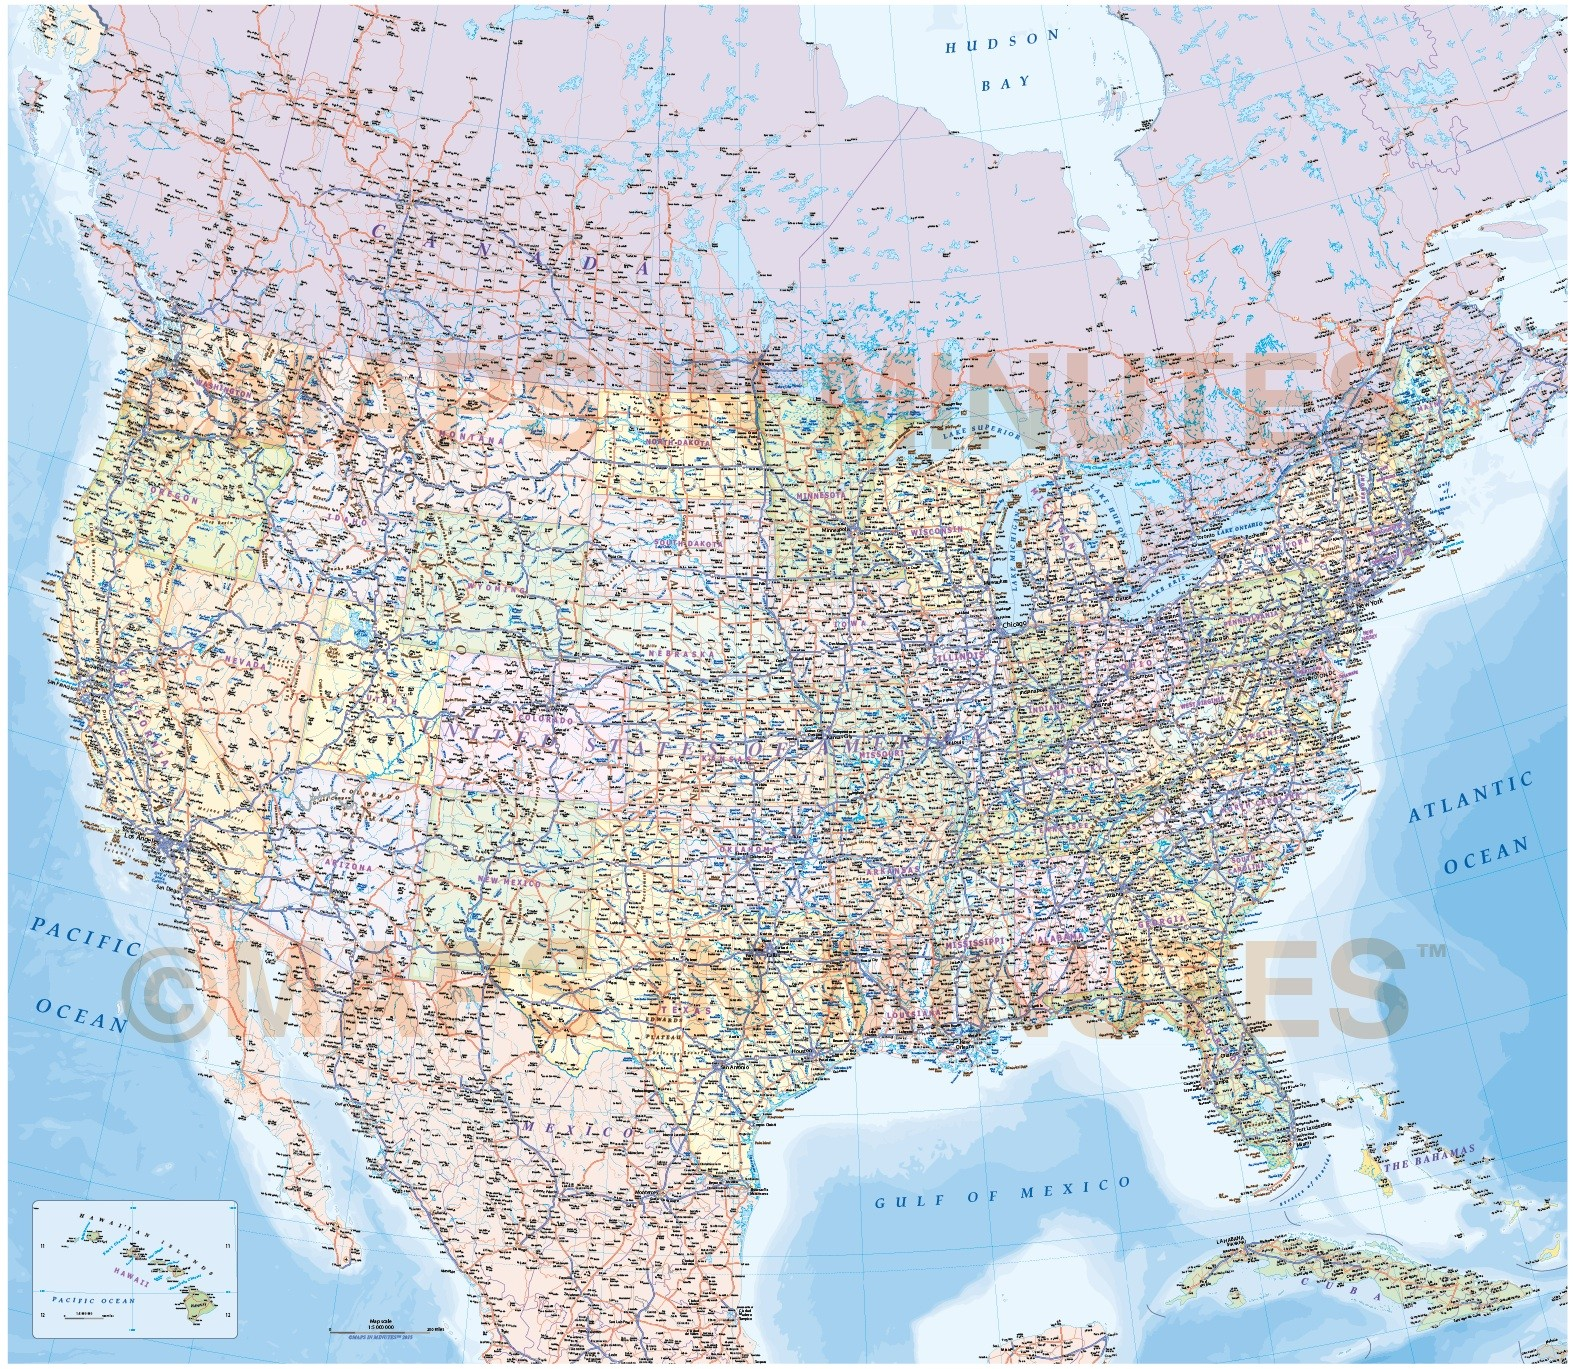 USA North America Road Rail Map, Illustrator AI CS vector format